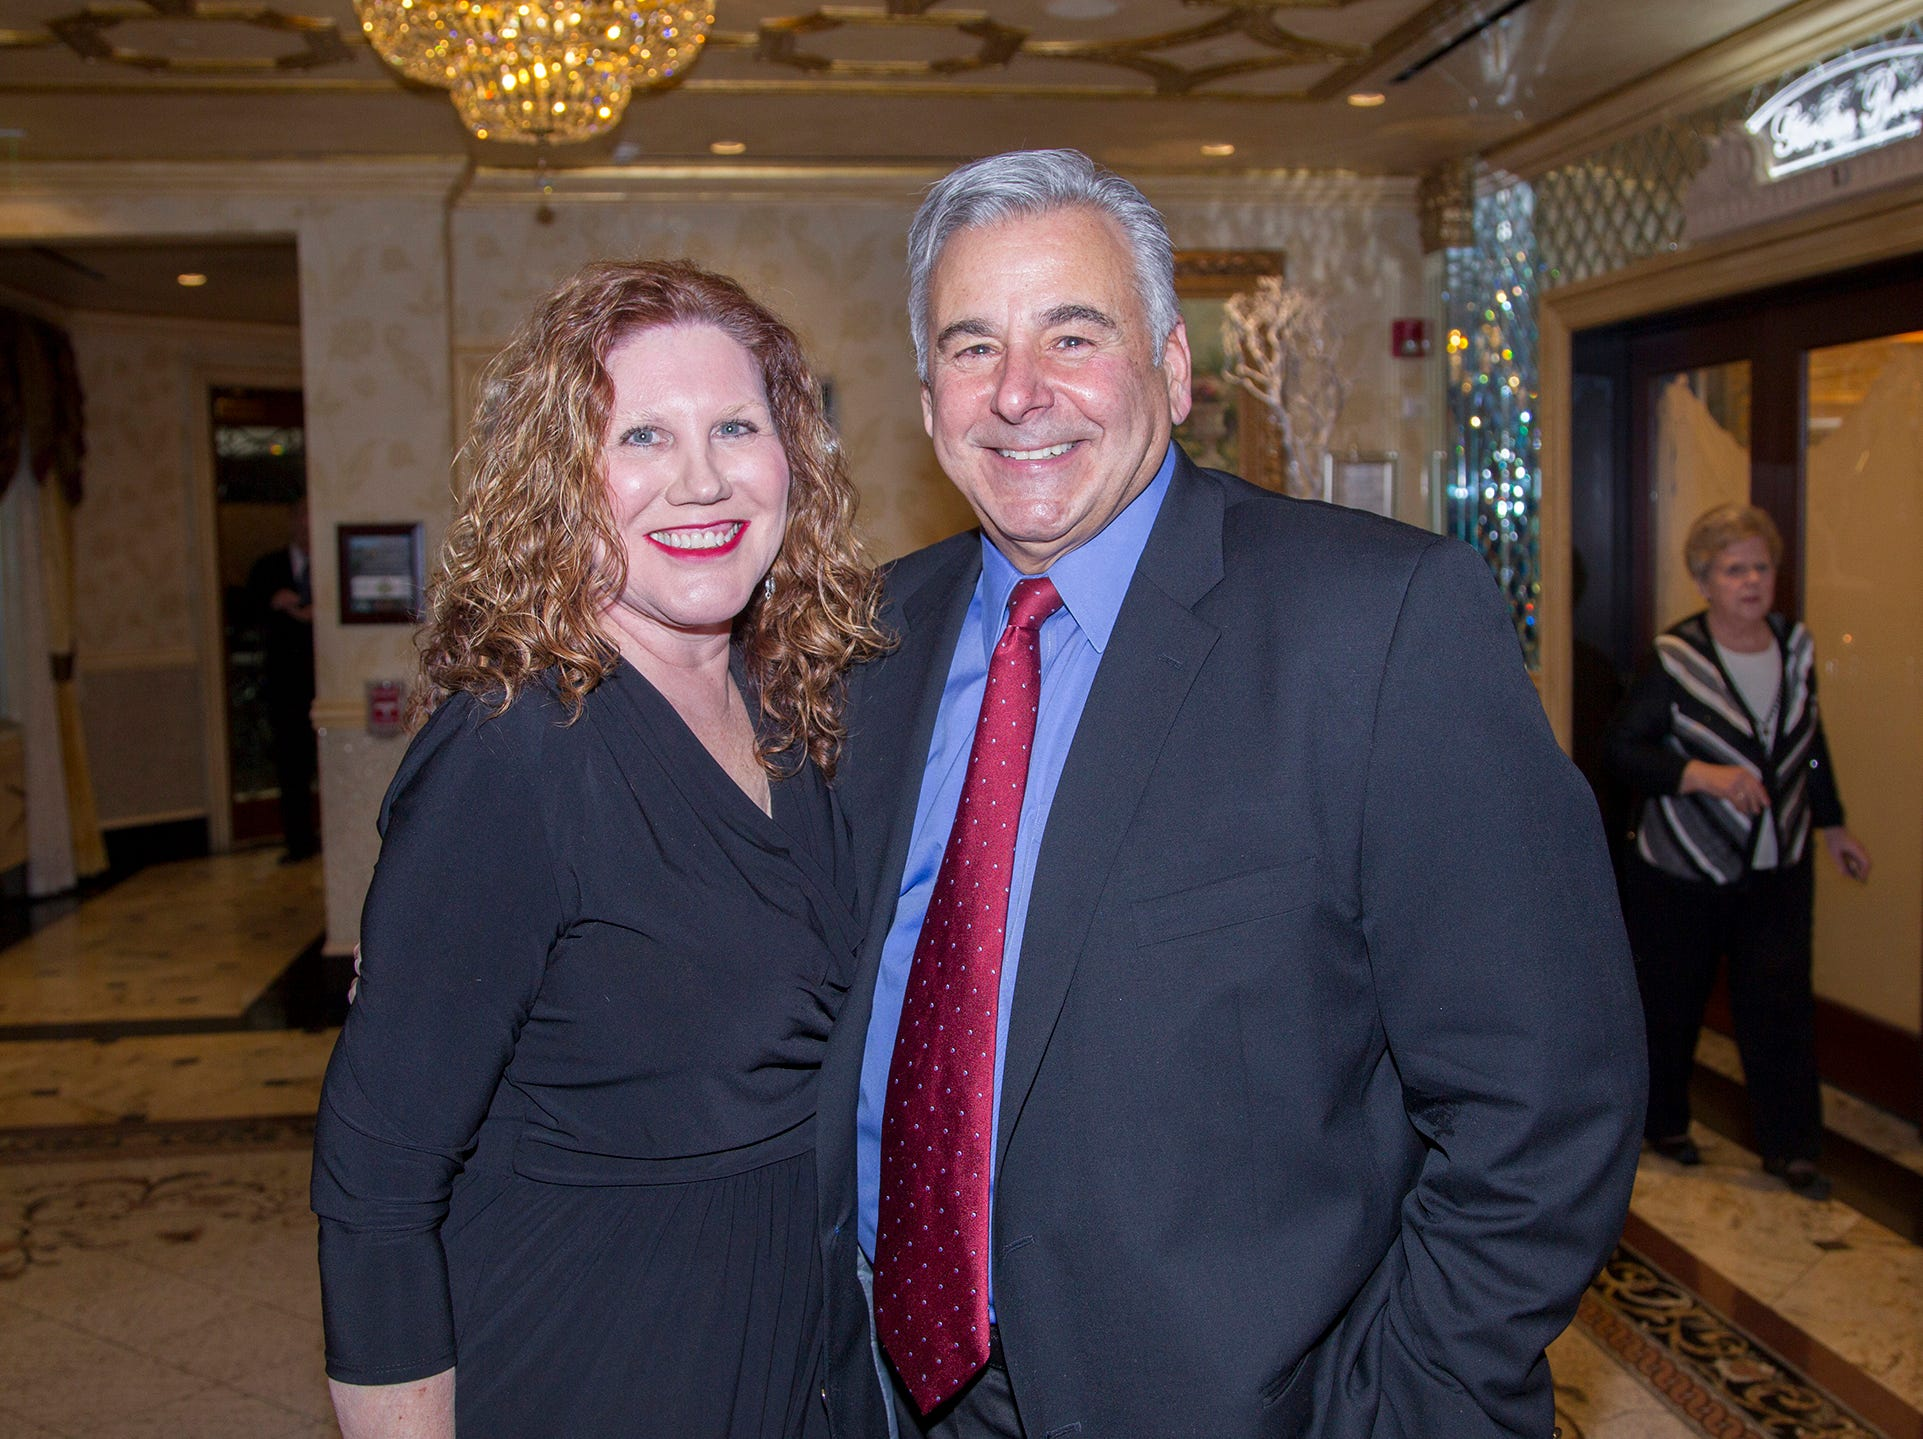 Beth Malin, Frank Lento. Institute for Educational Achievement (IEA) held its annual Dinner Dance at Seasons in Washington Township. 02/02/2019